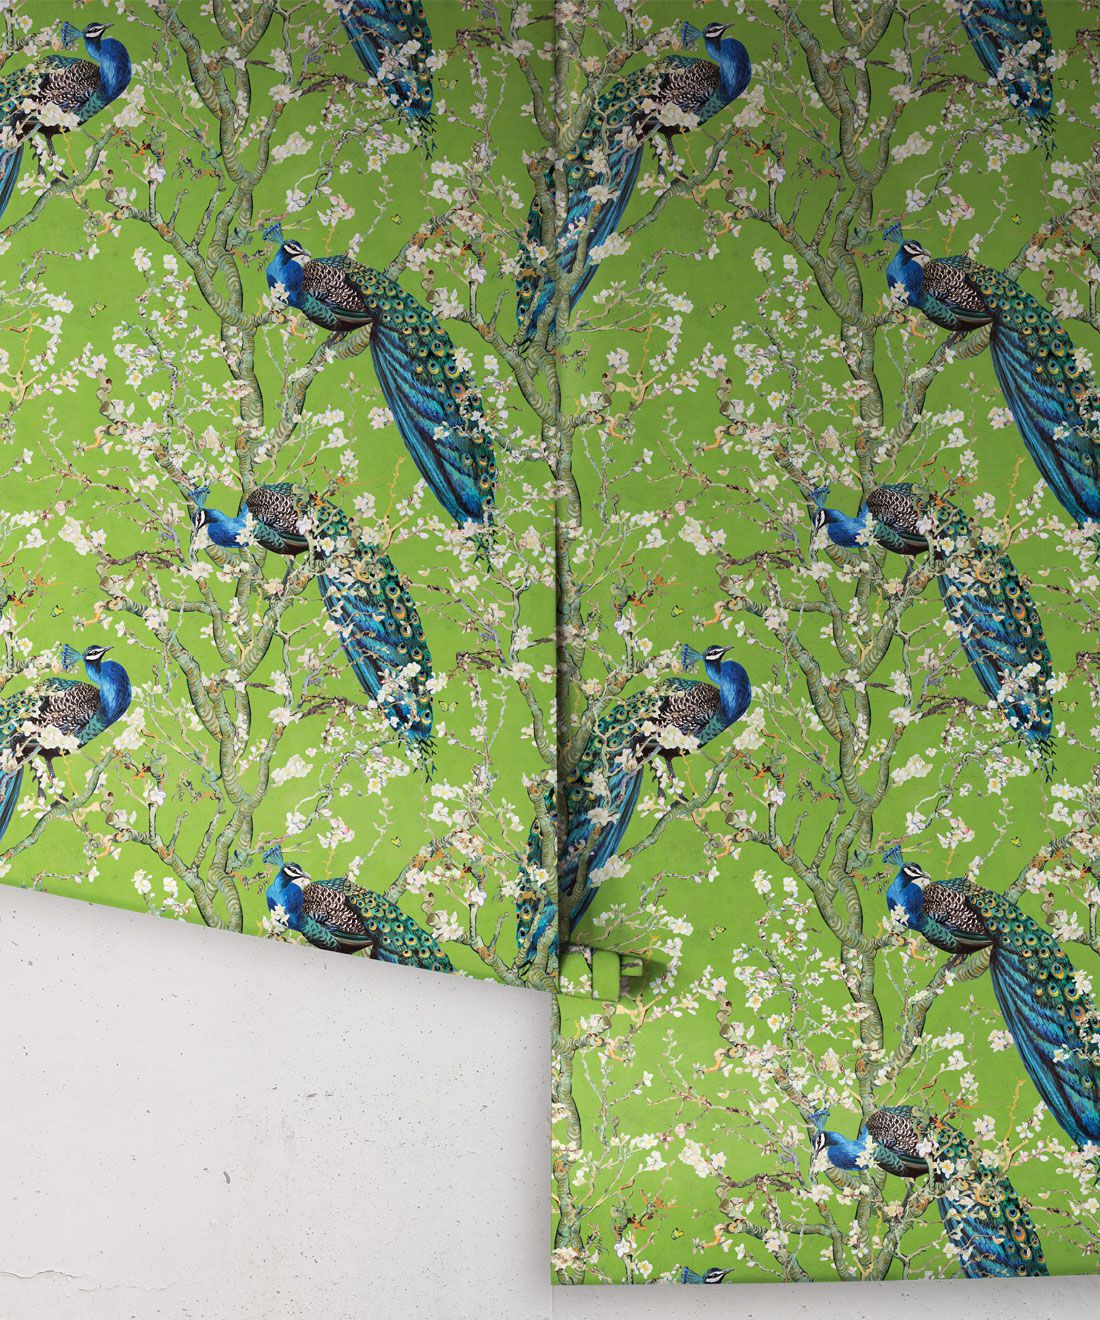 Almond Blossom Wallpaper • Chinoiserie Wallpaper • Wallpaper with Peacocks • Green Chartreause Wallpaper •Swatch